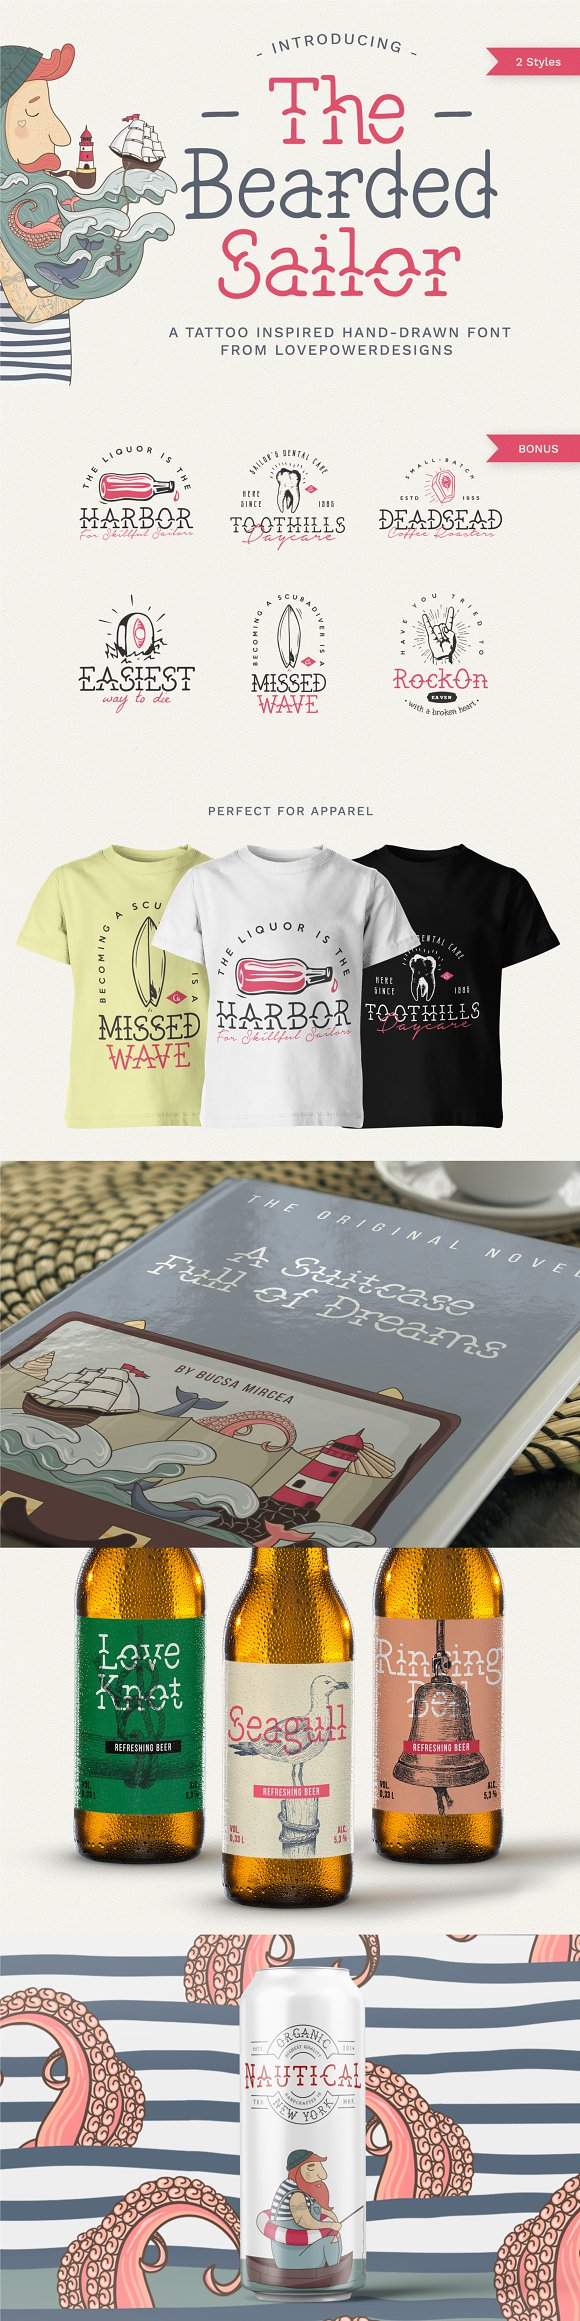 The Bearded Sailor - Tattoo Font in Display Fonts - product preview 14